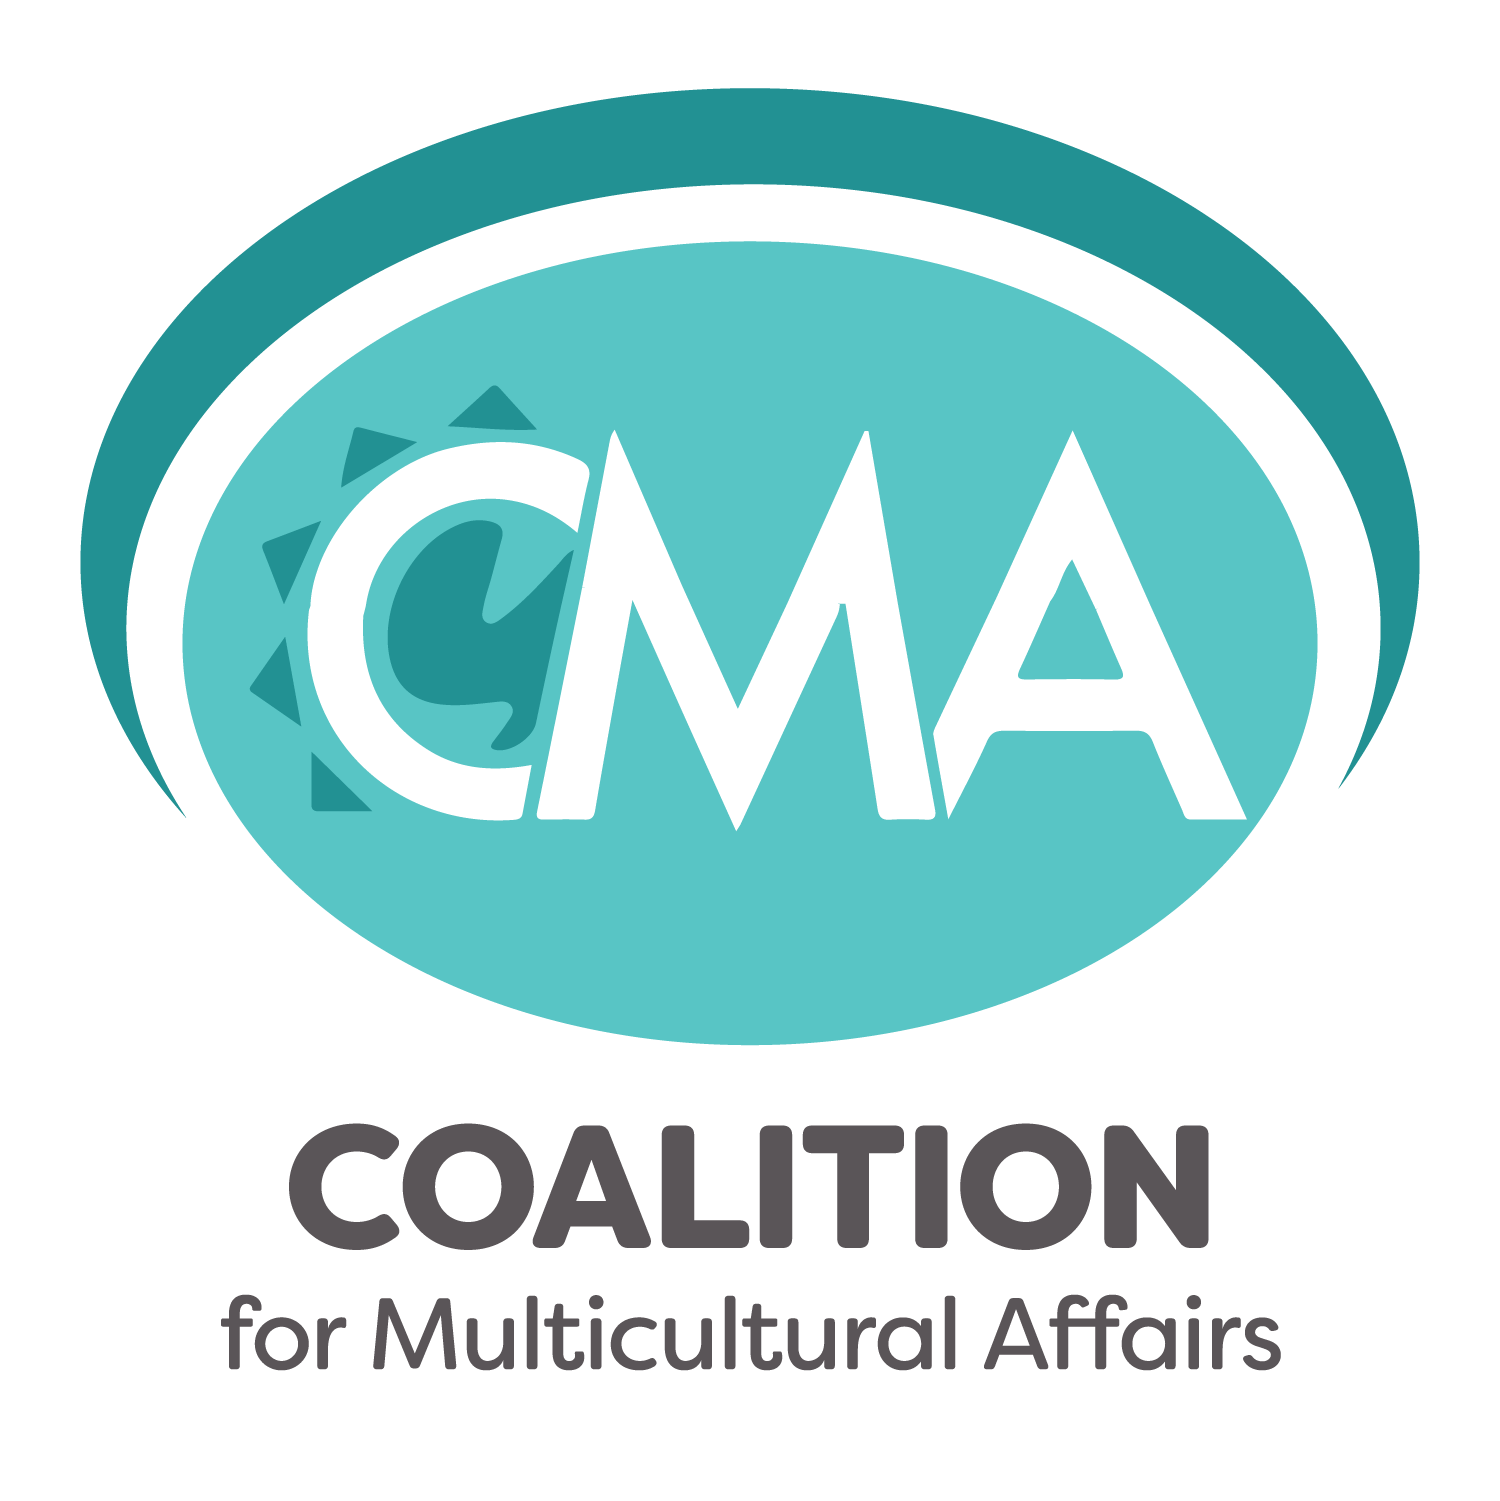 Coalition for Multicultural Affairs logo